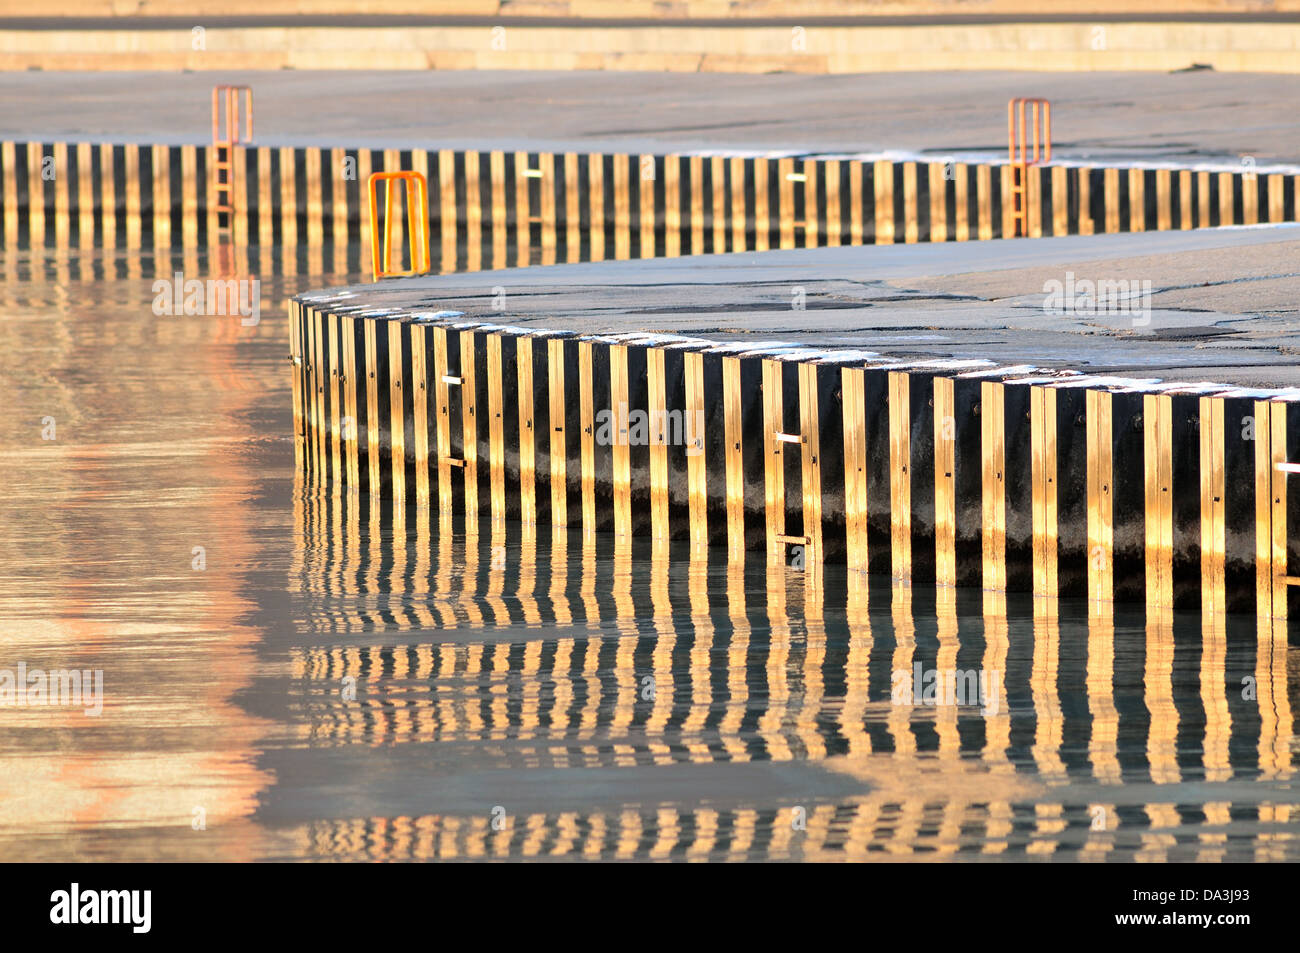 Reinforced lake wall along Chicago's North Avenue Beach area reflection Lake Michigan. Chicago, Illinois, USA. - Stock Image